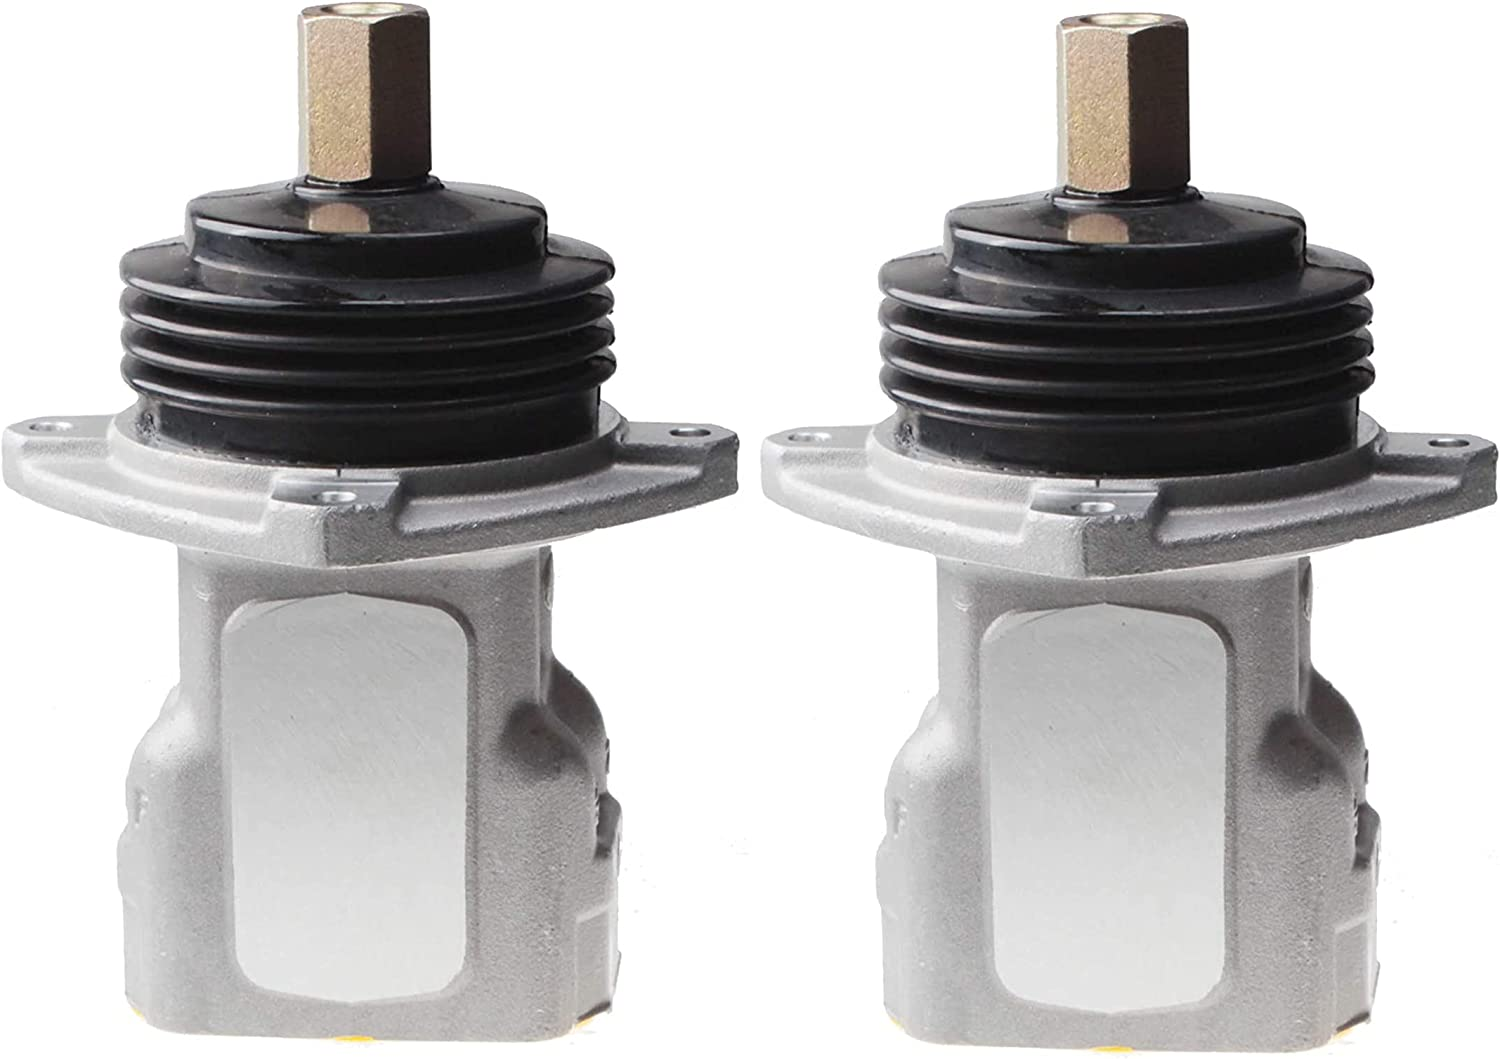 Solarhome 2PCS YN30V00111F1 Pilot Valve Challenge the lowest price of Japan E135B Holland New E1 for York Mall